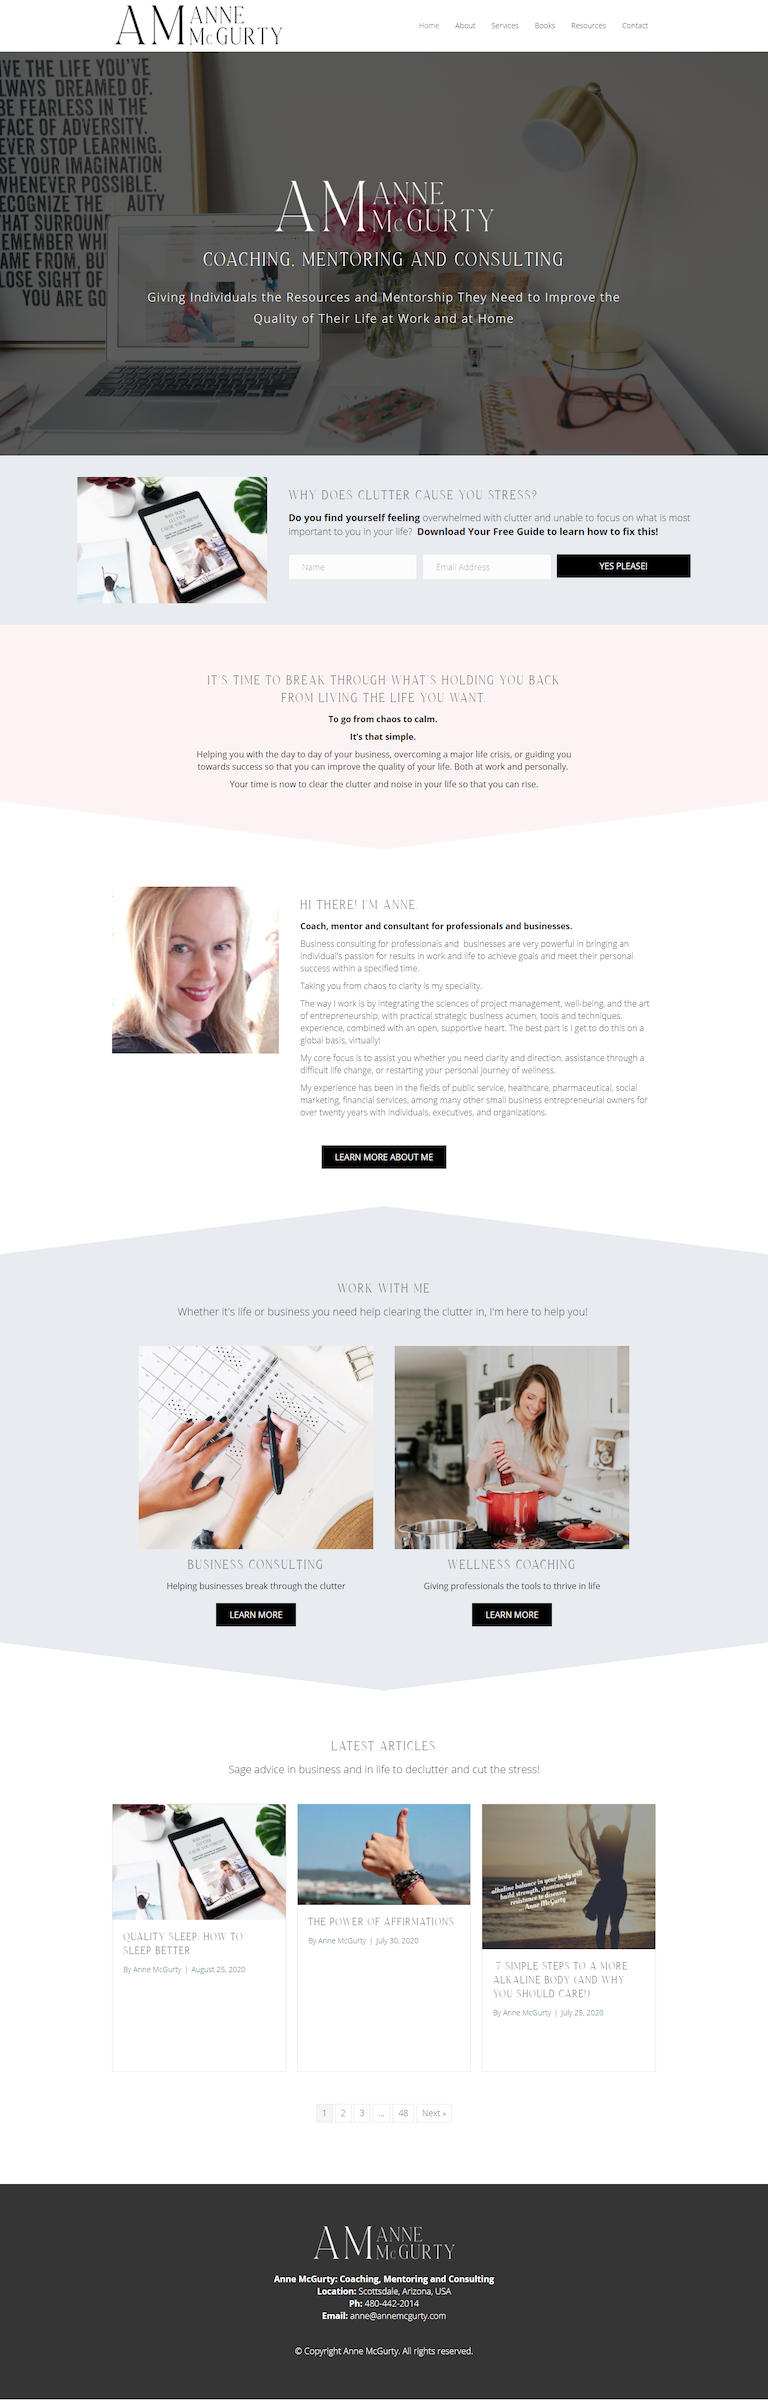 Business Coach Website Design Screen